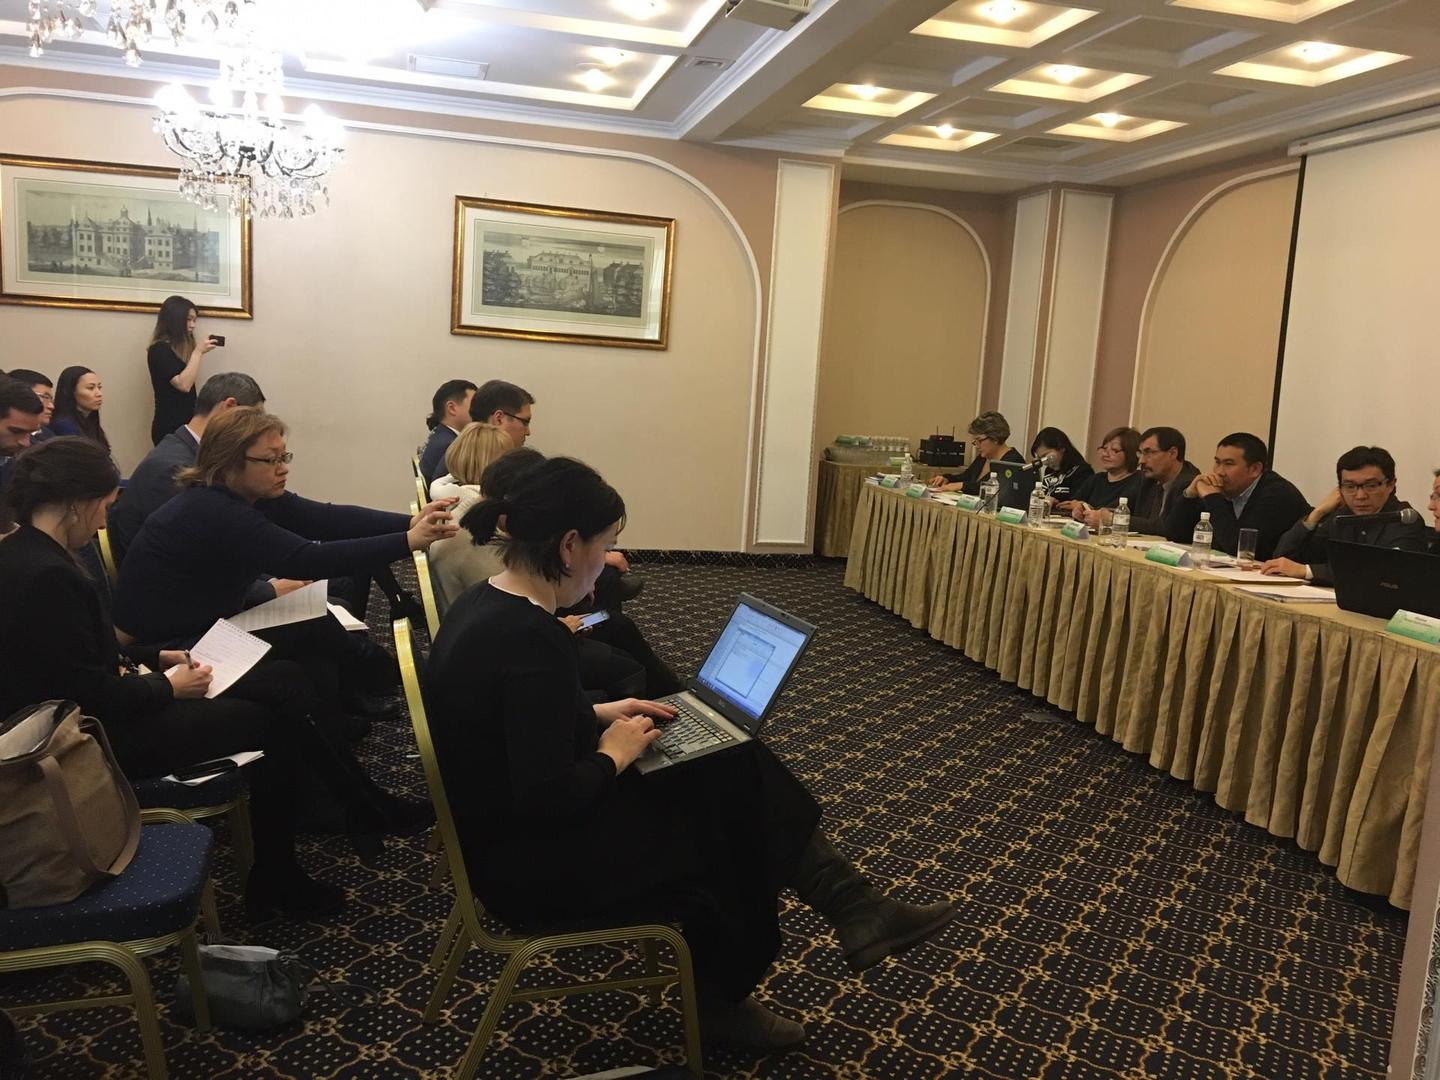 Kazakhstan: Rights Groups Harassed